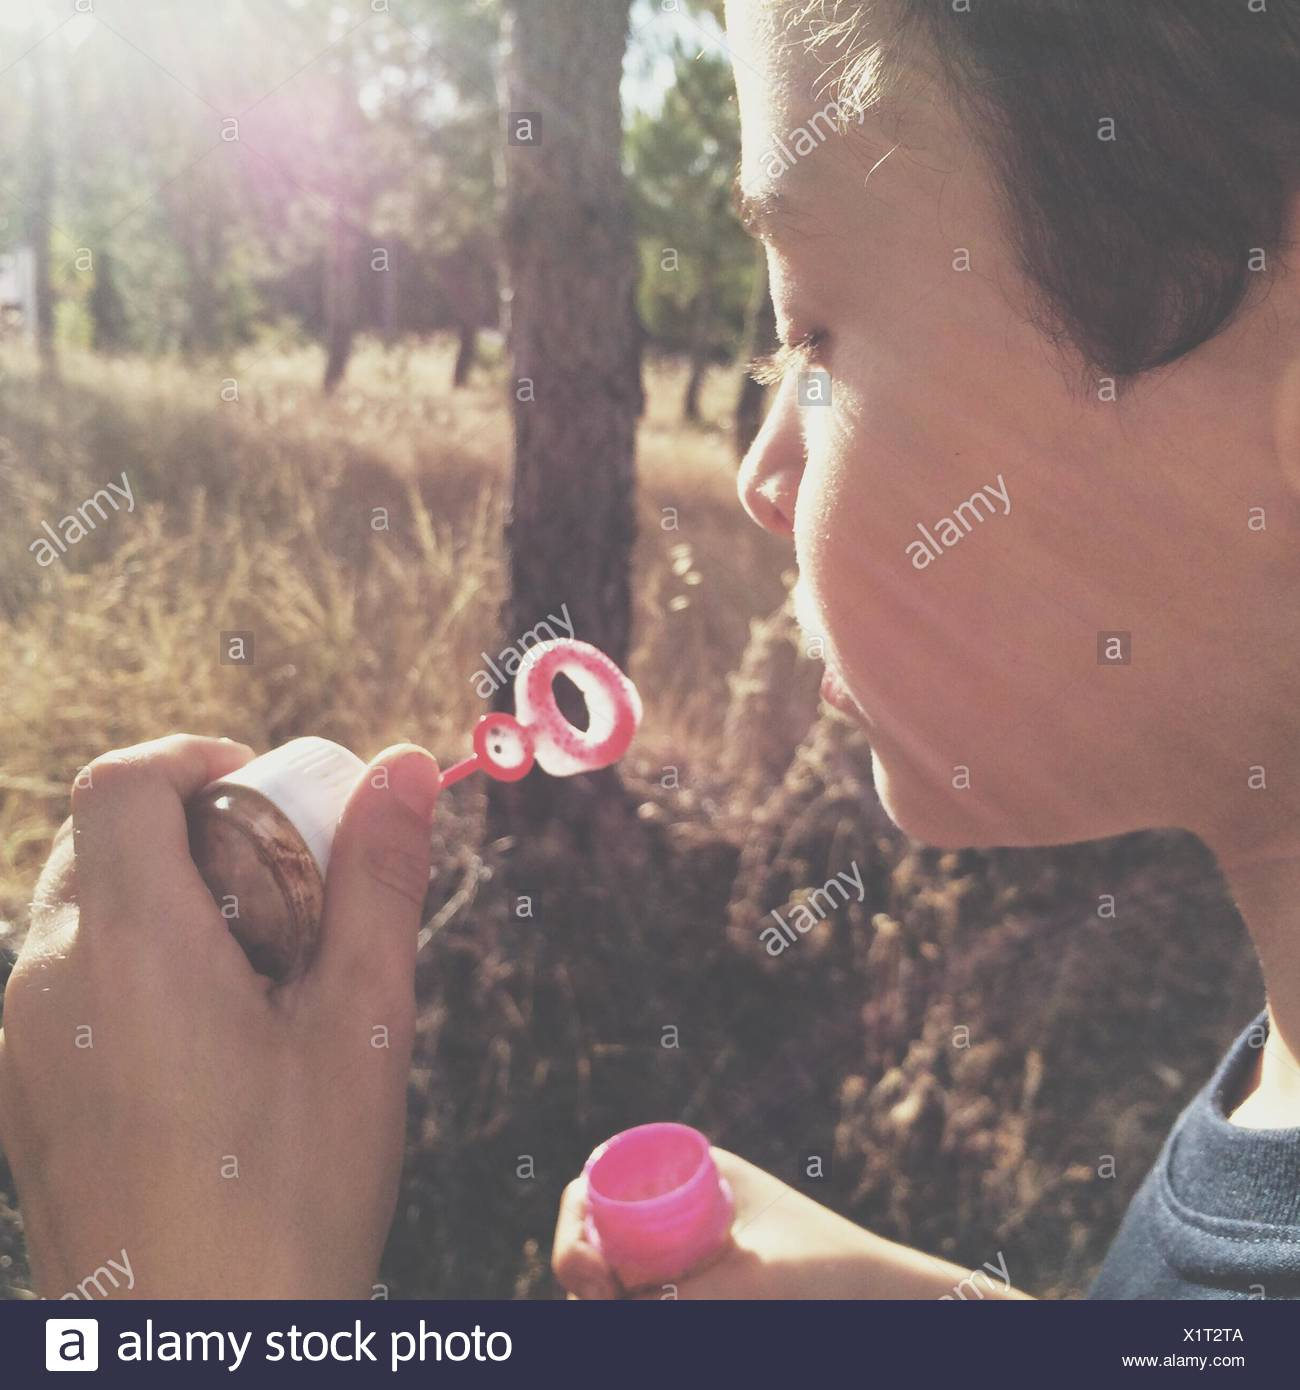 Kid Blowing Bubbles - Stock Image